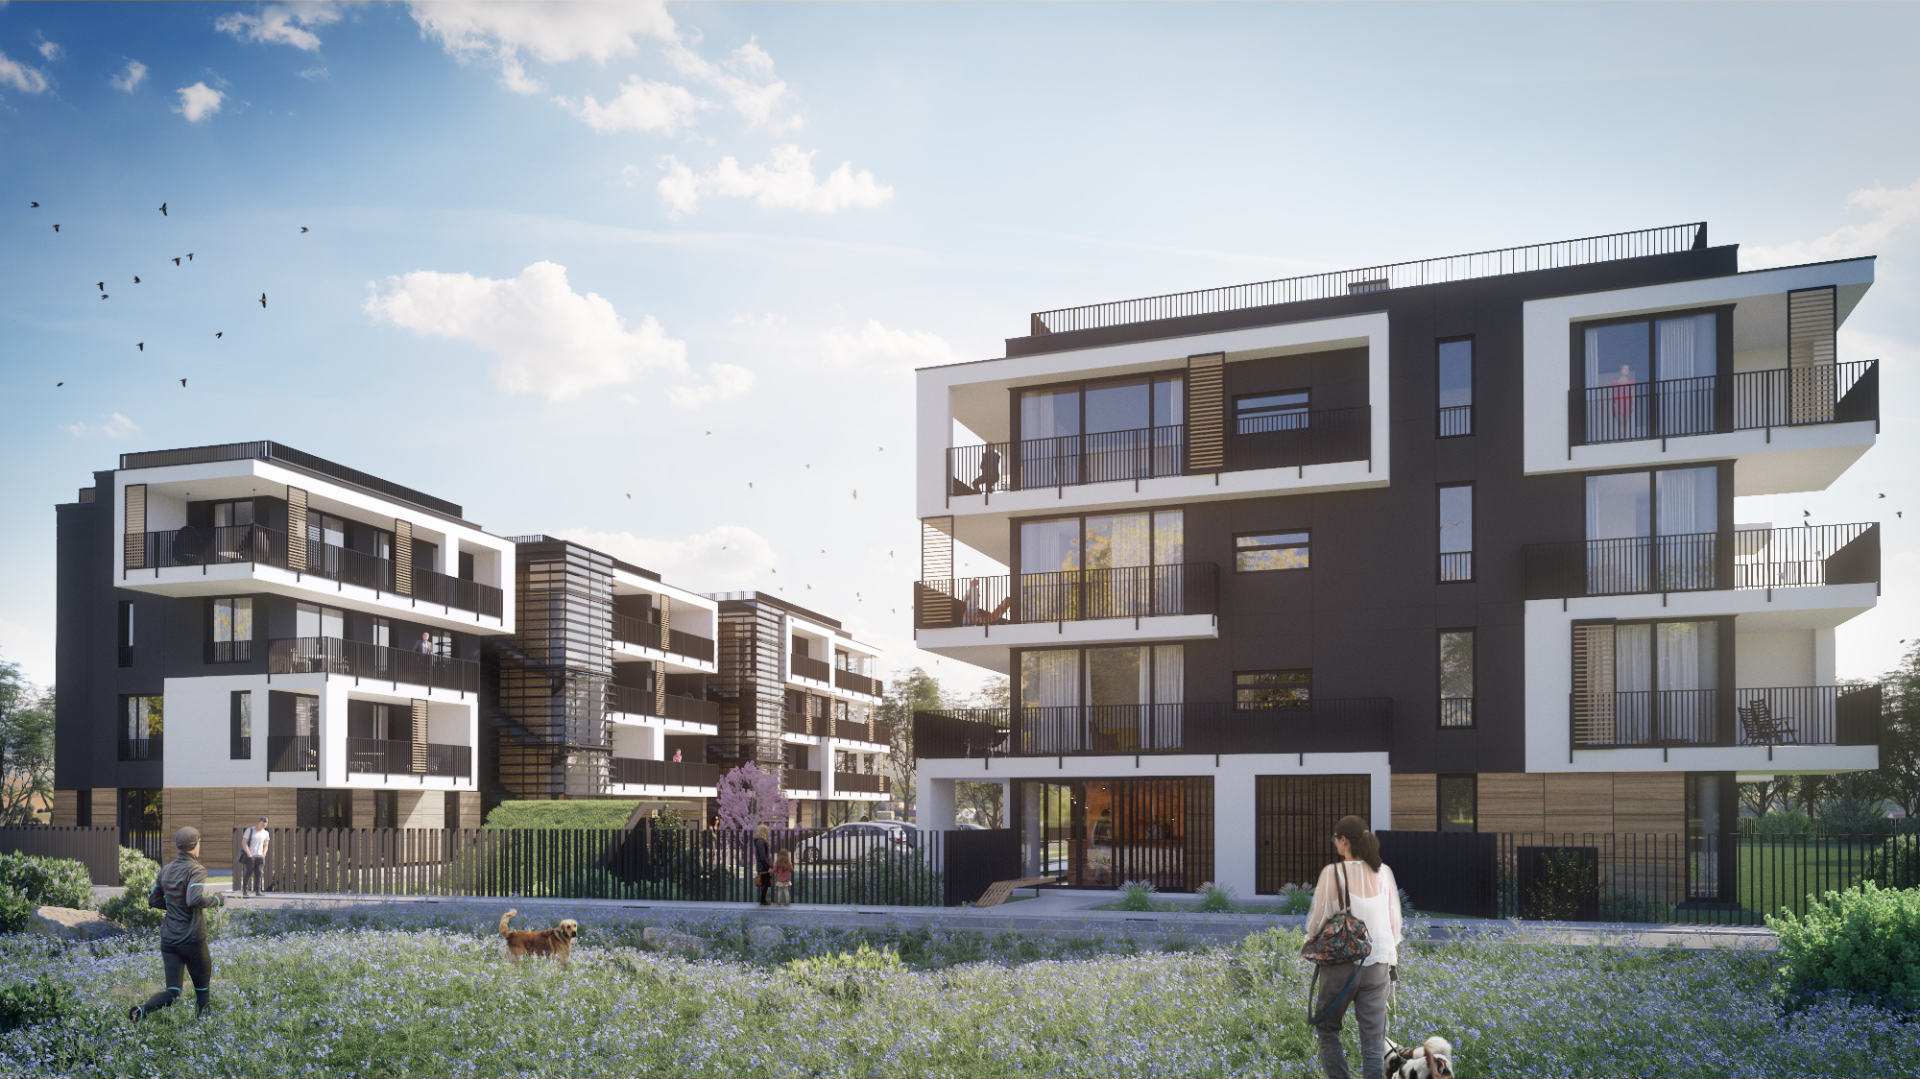 3D visualisation showing a housing development - exterior day